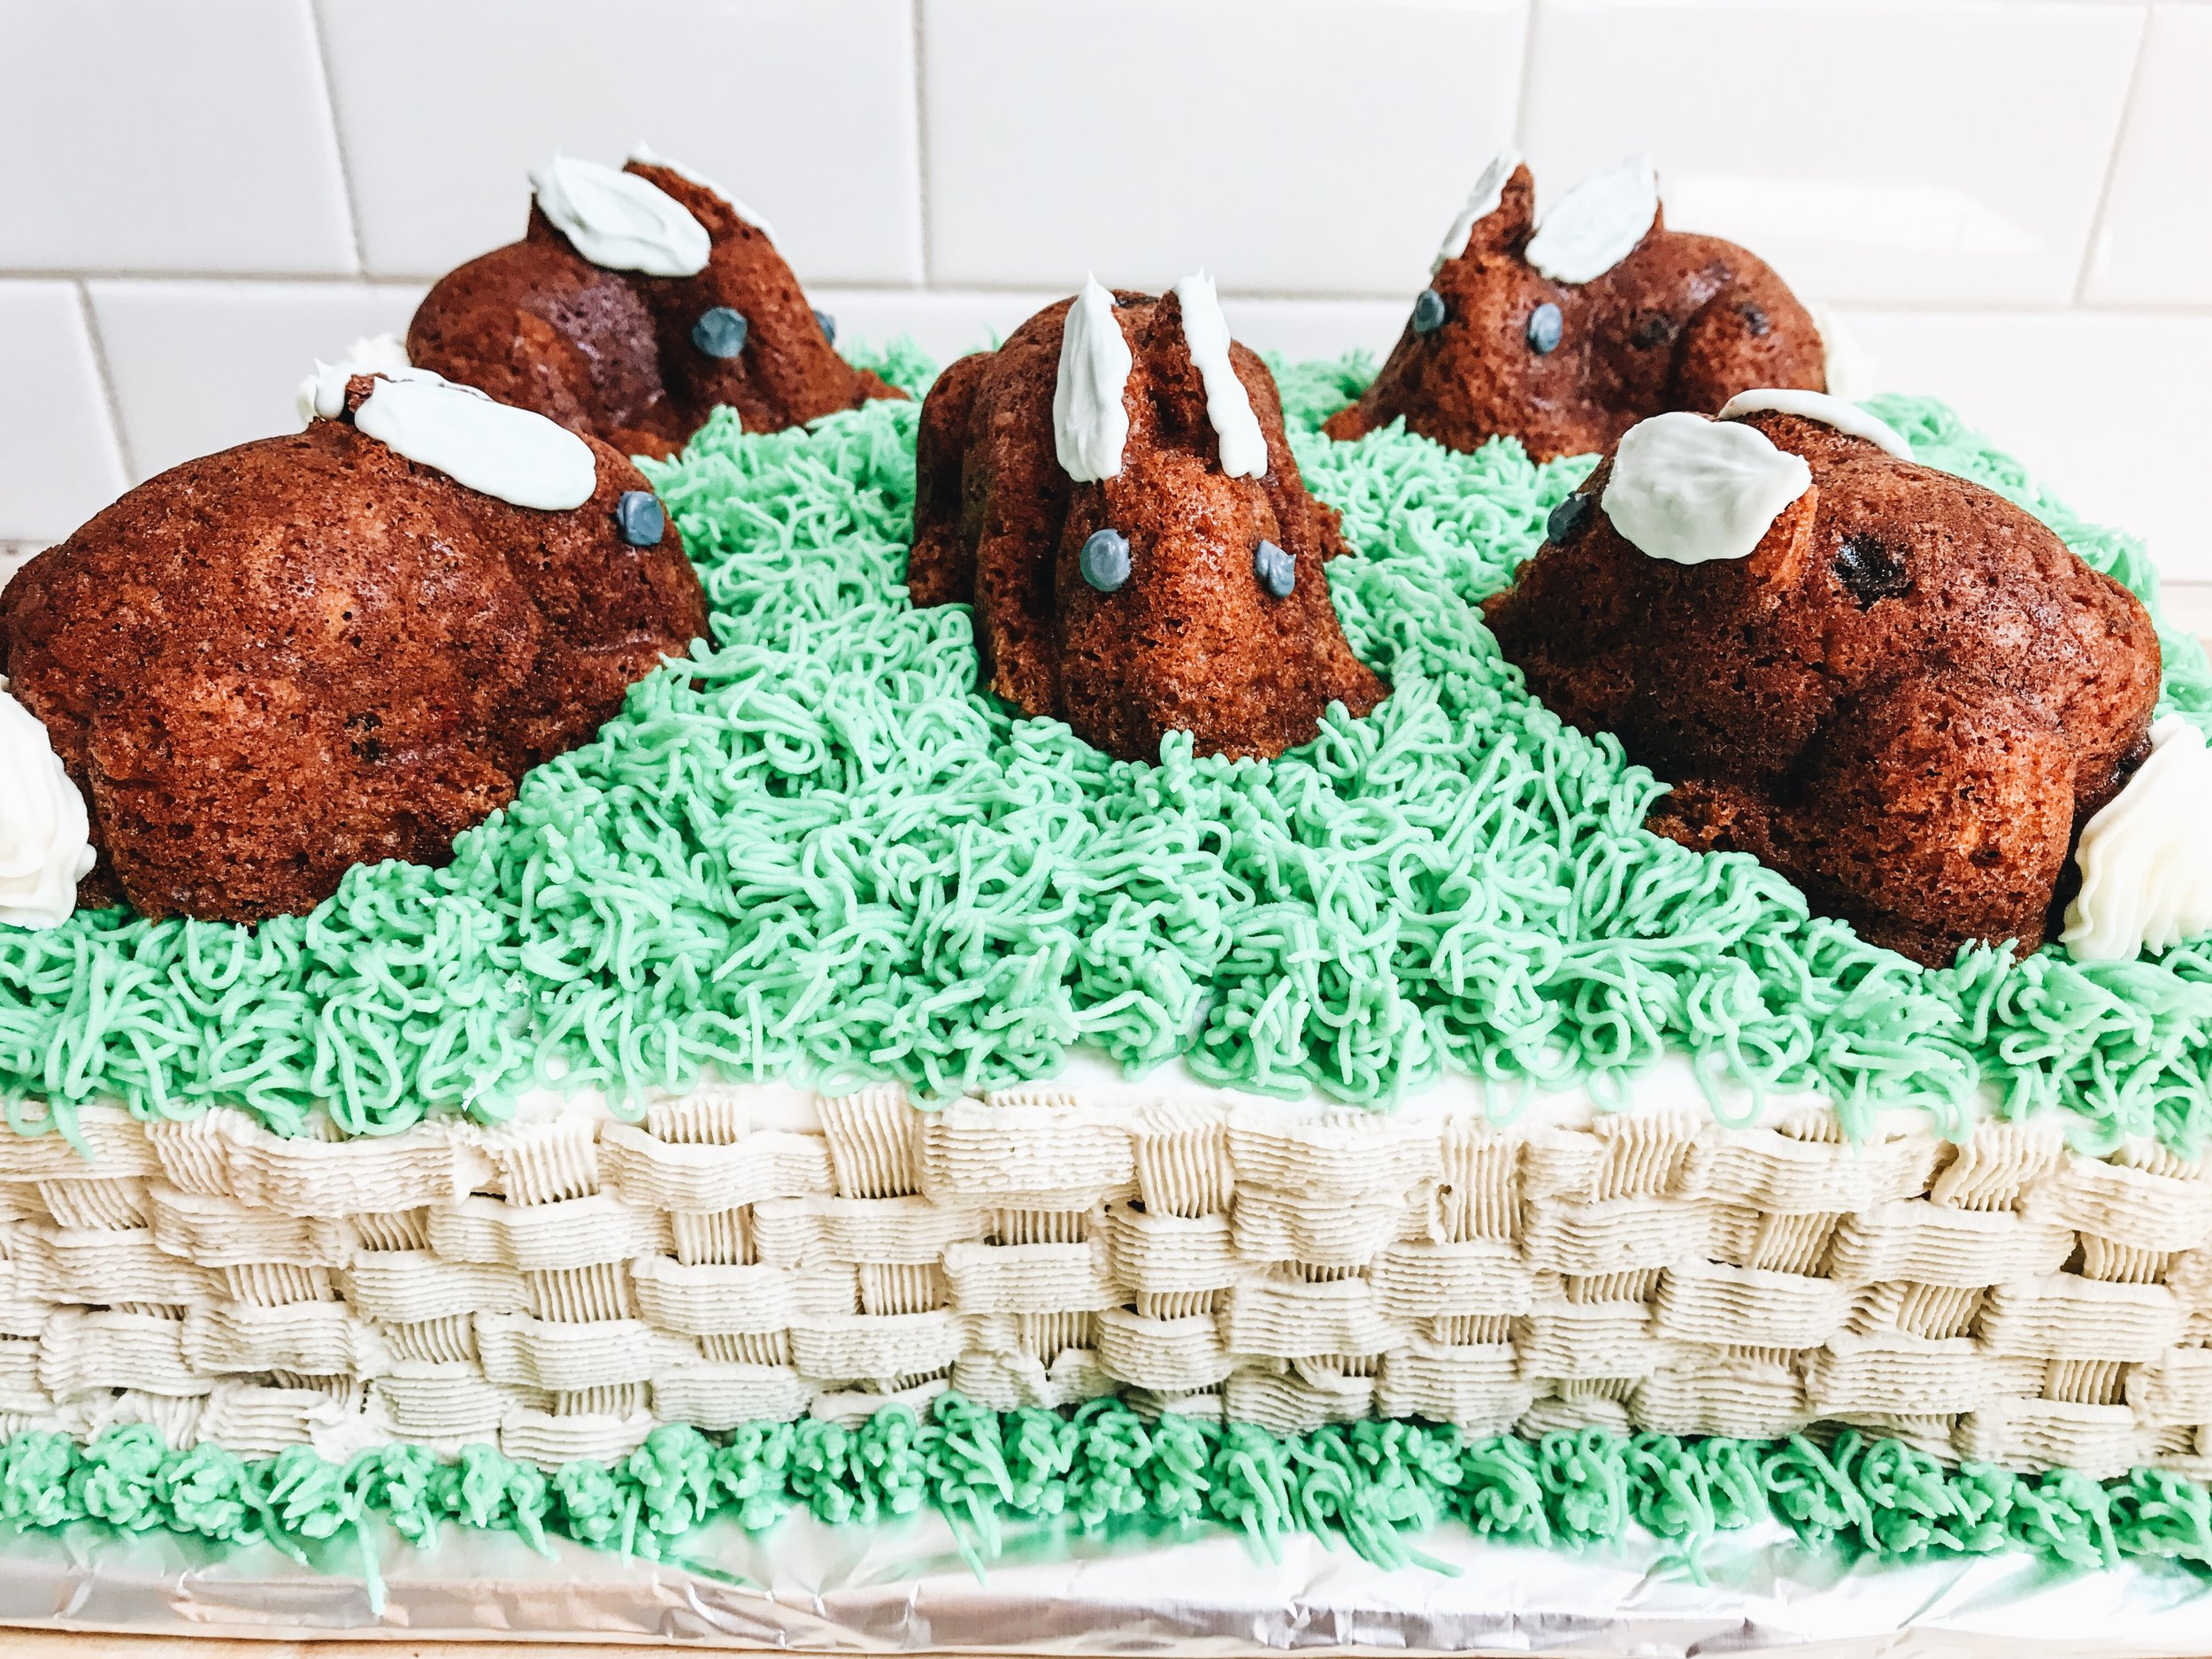 Easter Cake with bunnies on top of it. Bunnies hopping around in the grass.